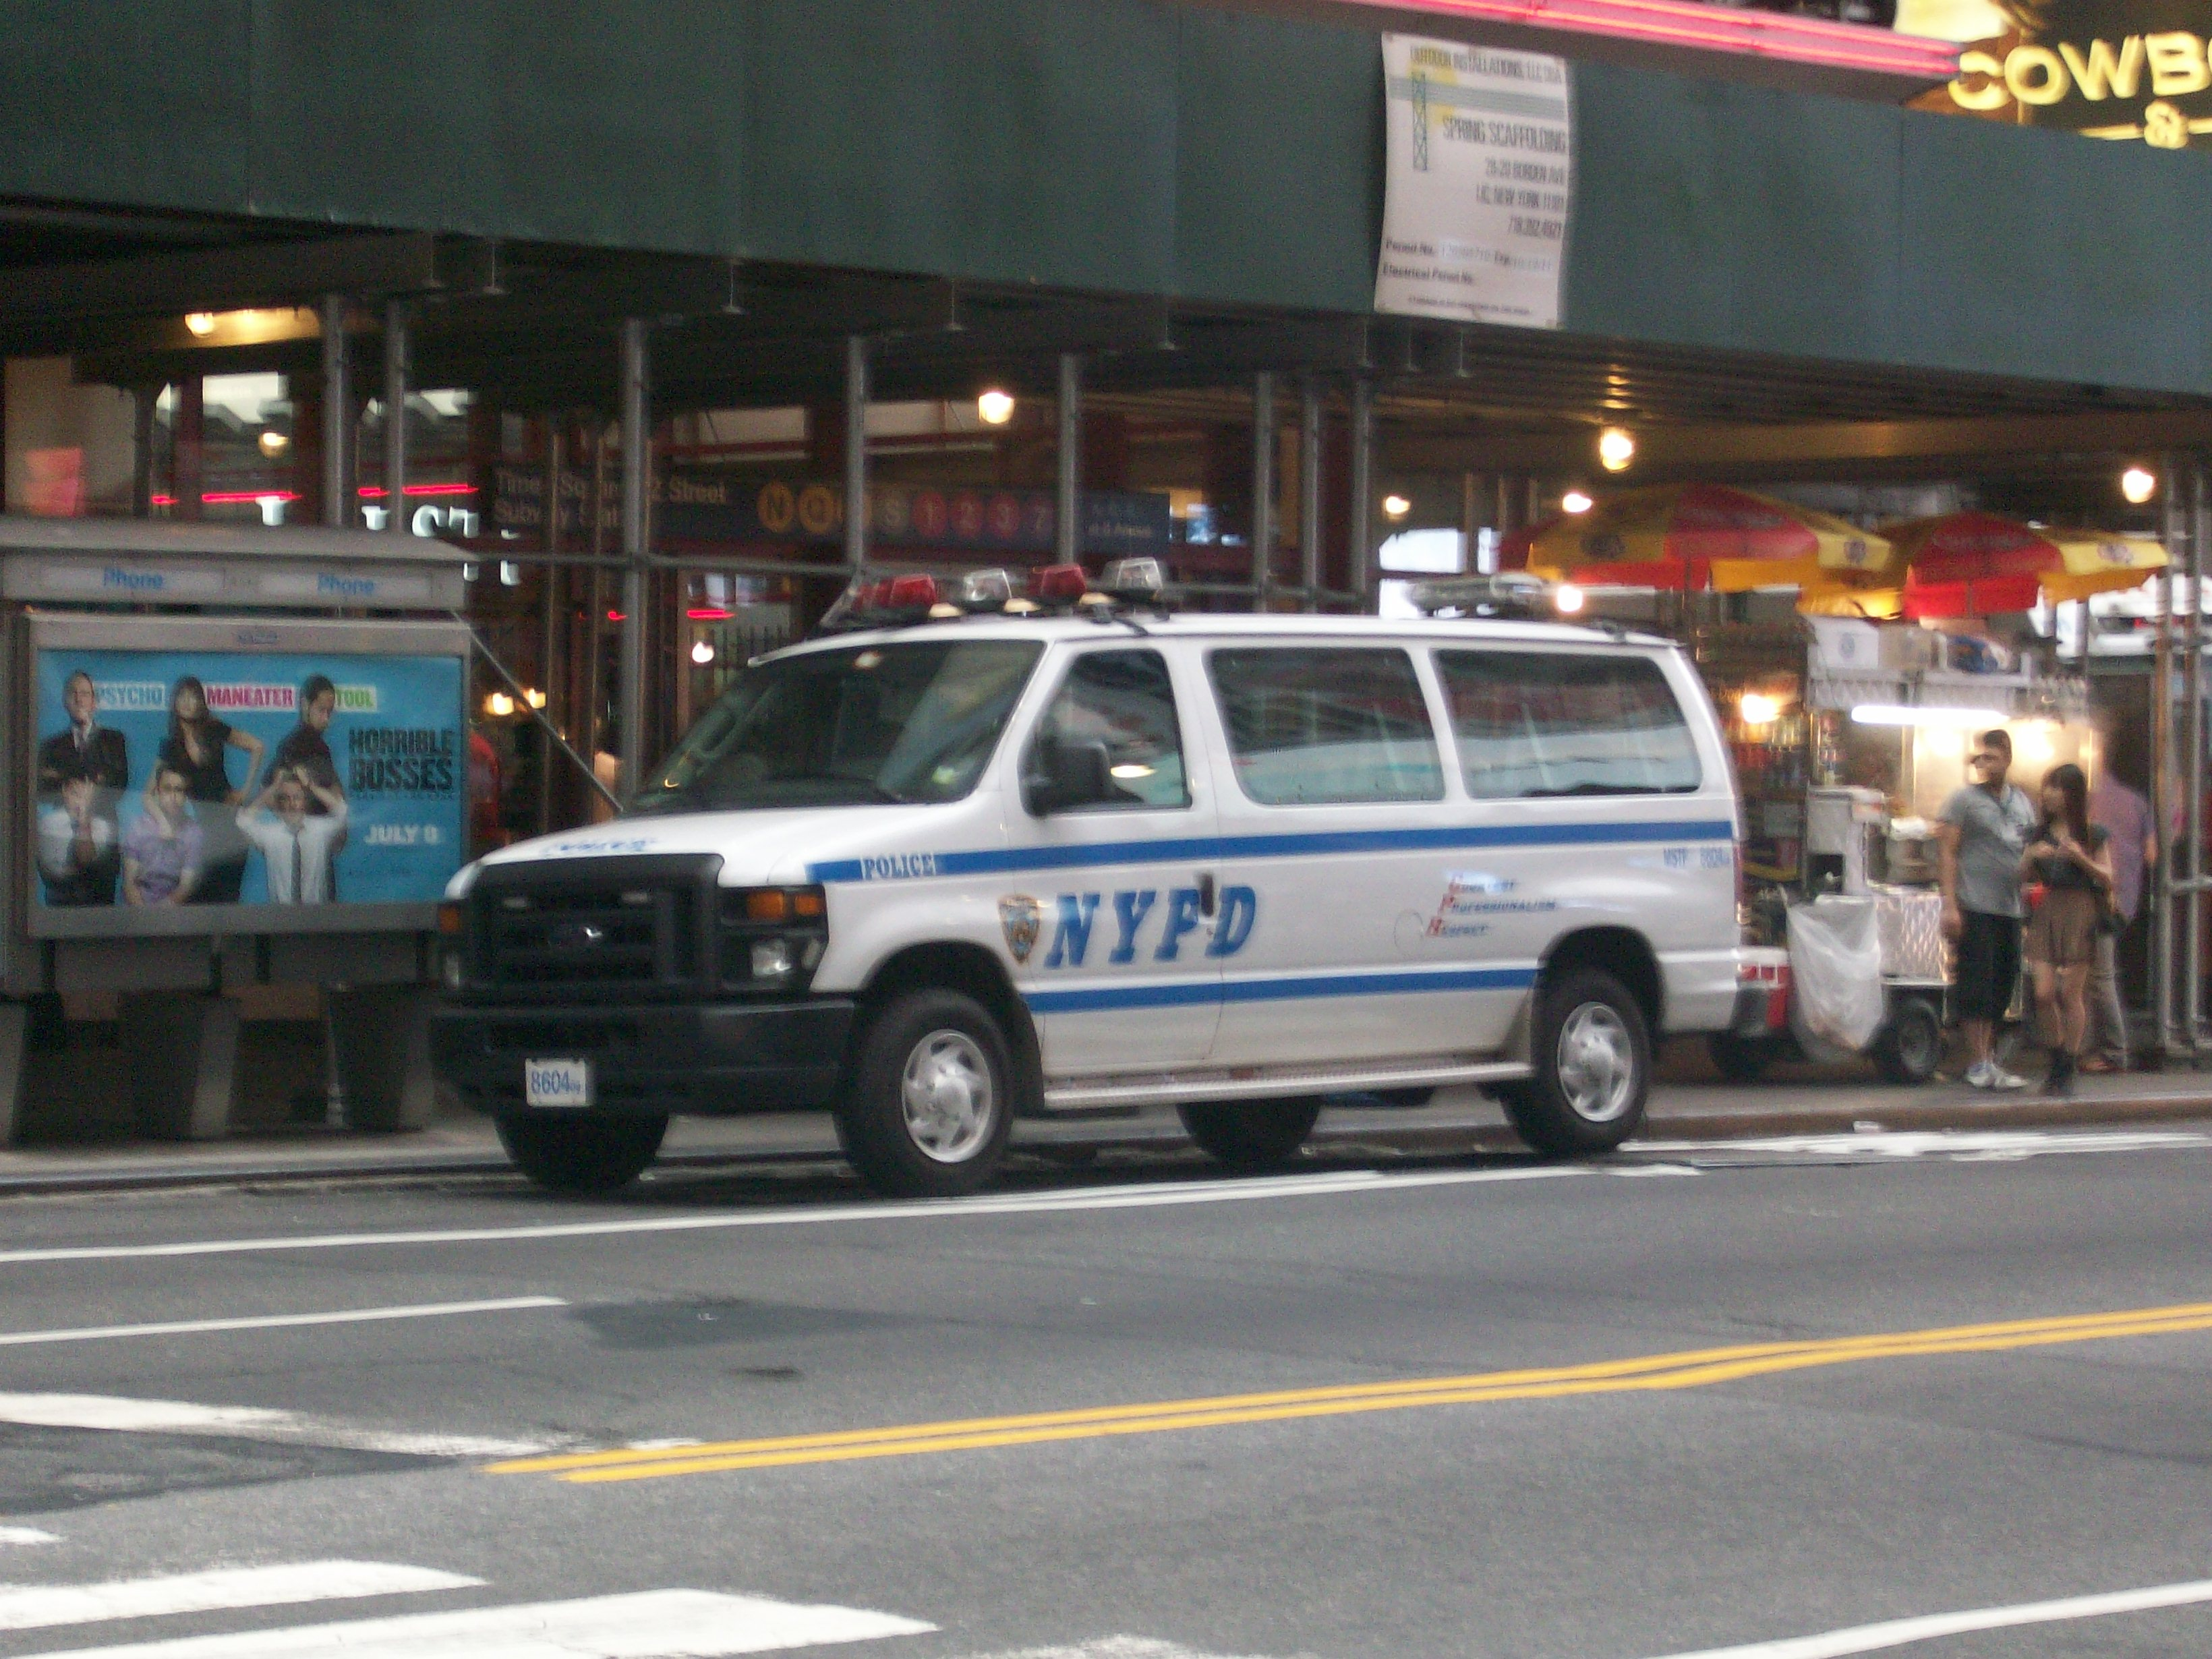 NYPD Ford E-series white version-2011.JPG